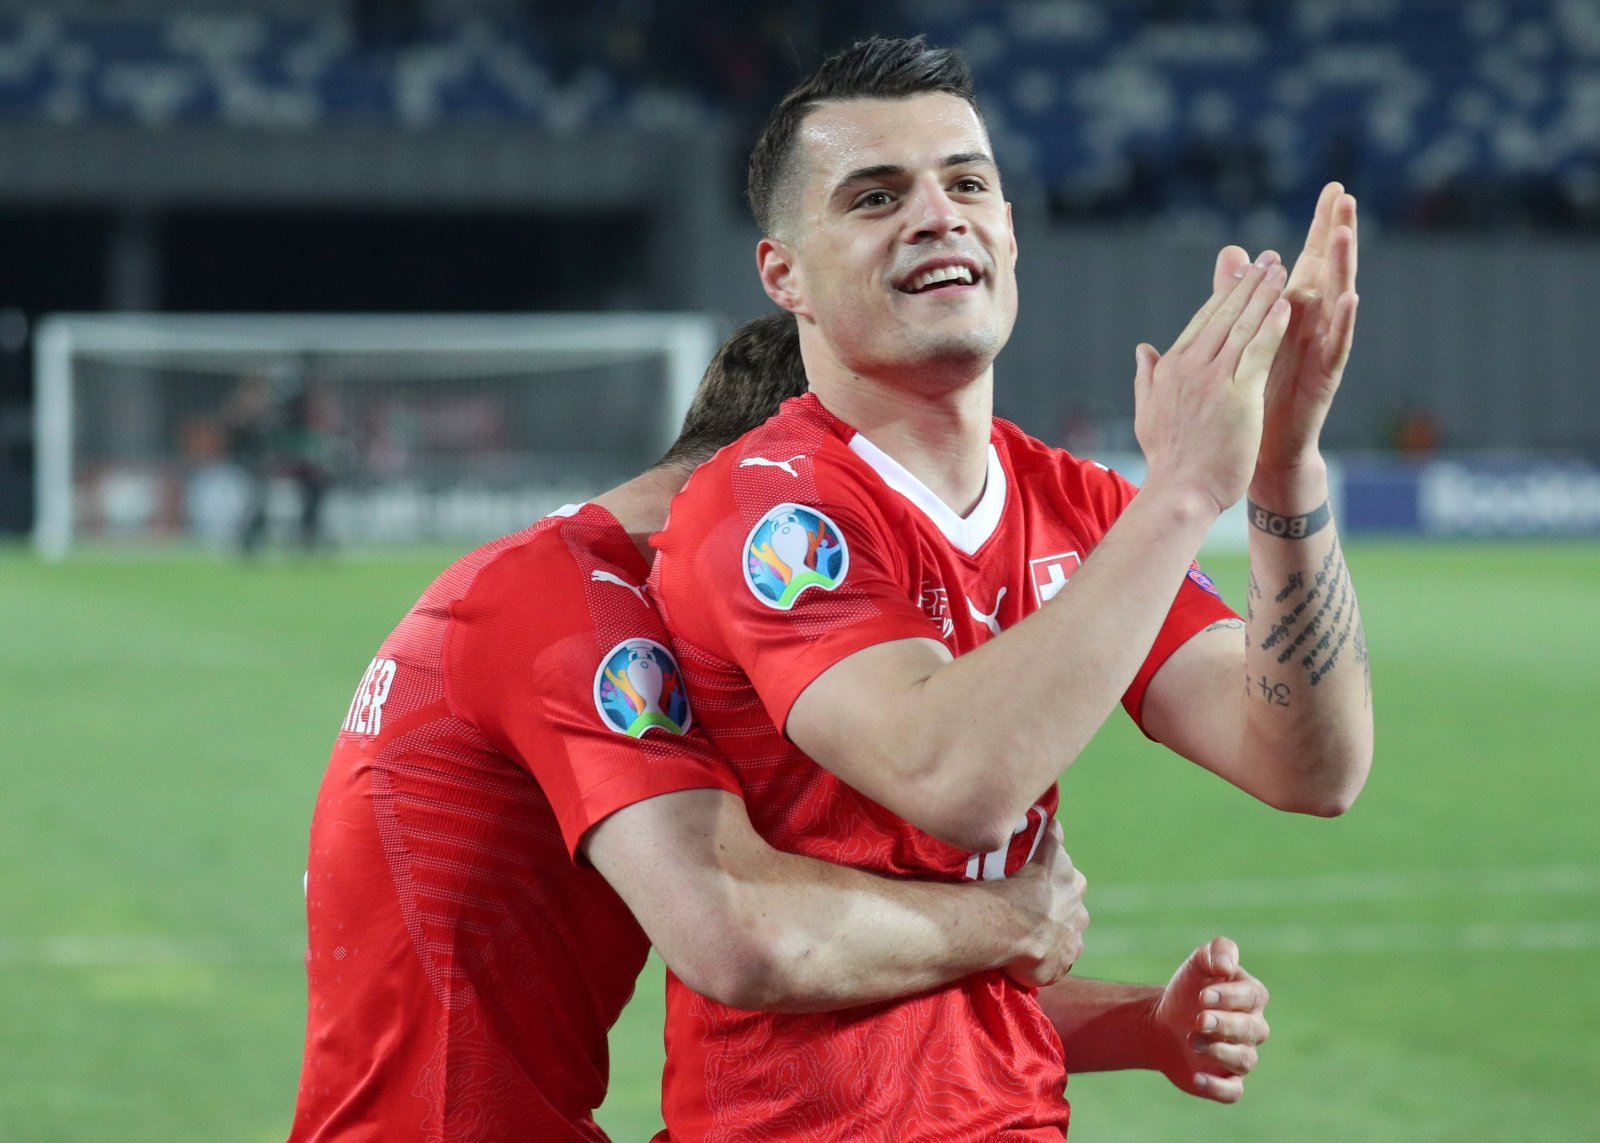 Arsenal: Granit Xhaka should be absolved of defensive responsibility